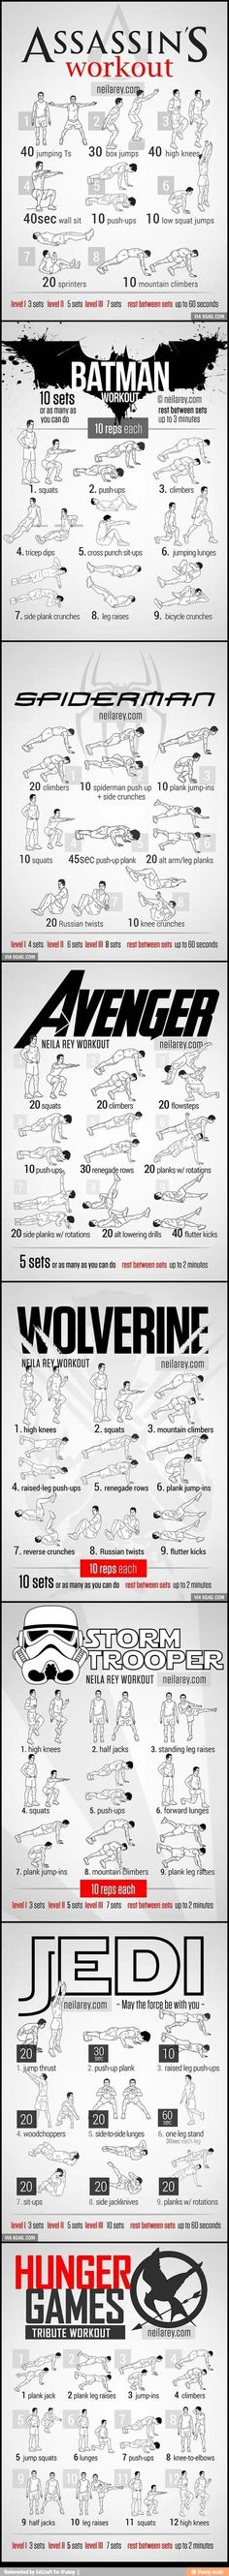 #workouts